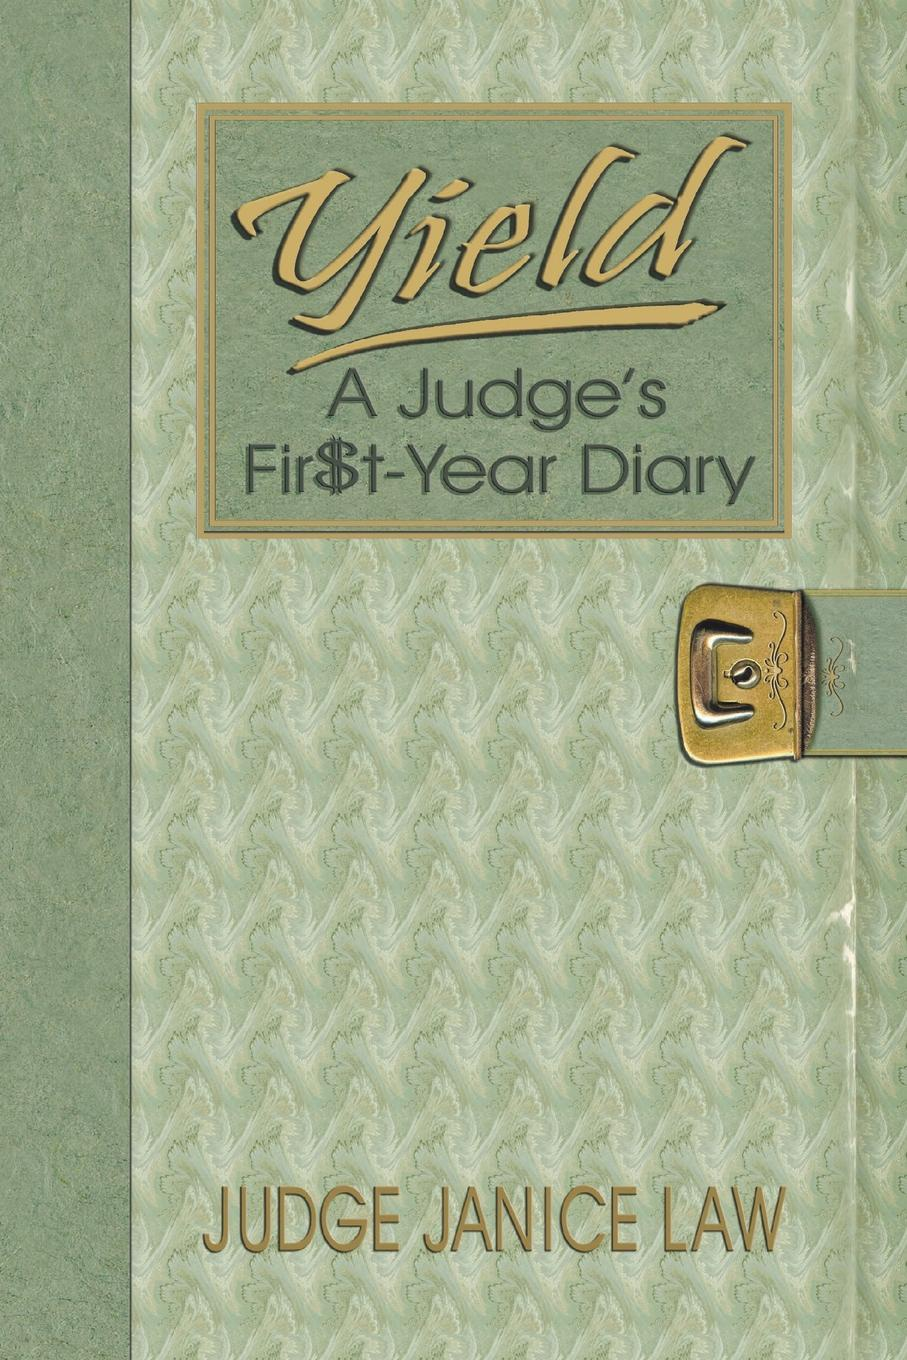 Judge Janice Law Yield. A Judge.s Fir.t-Year Diary h j suter lerch germany her own judge